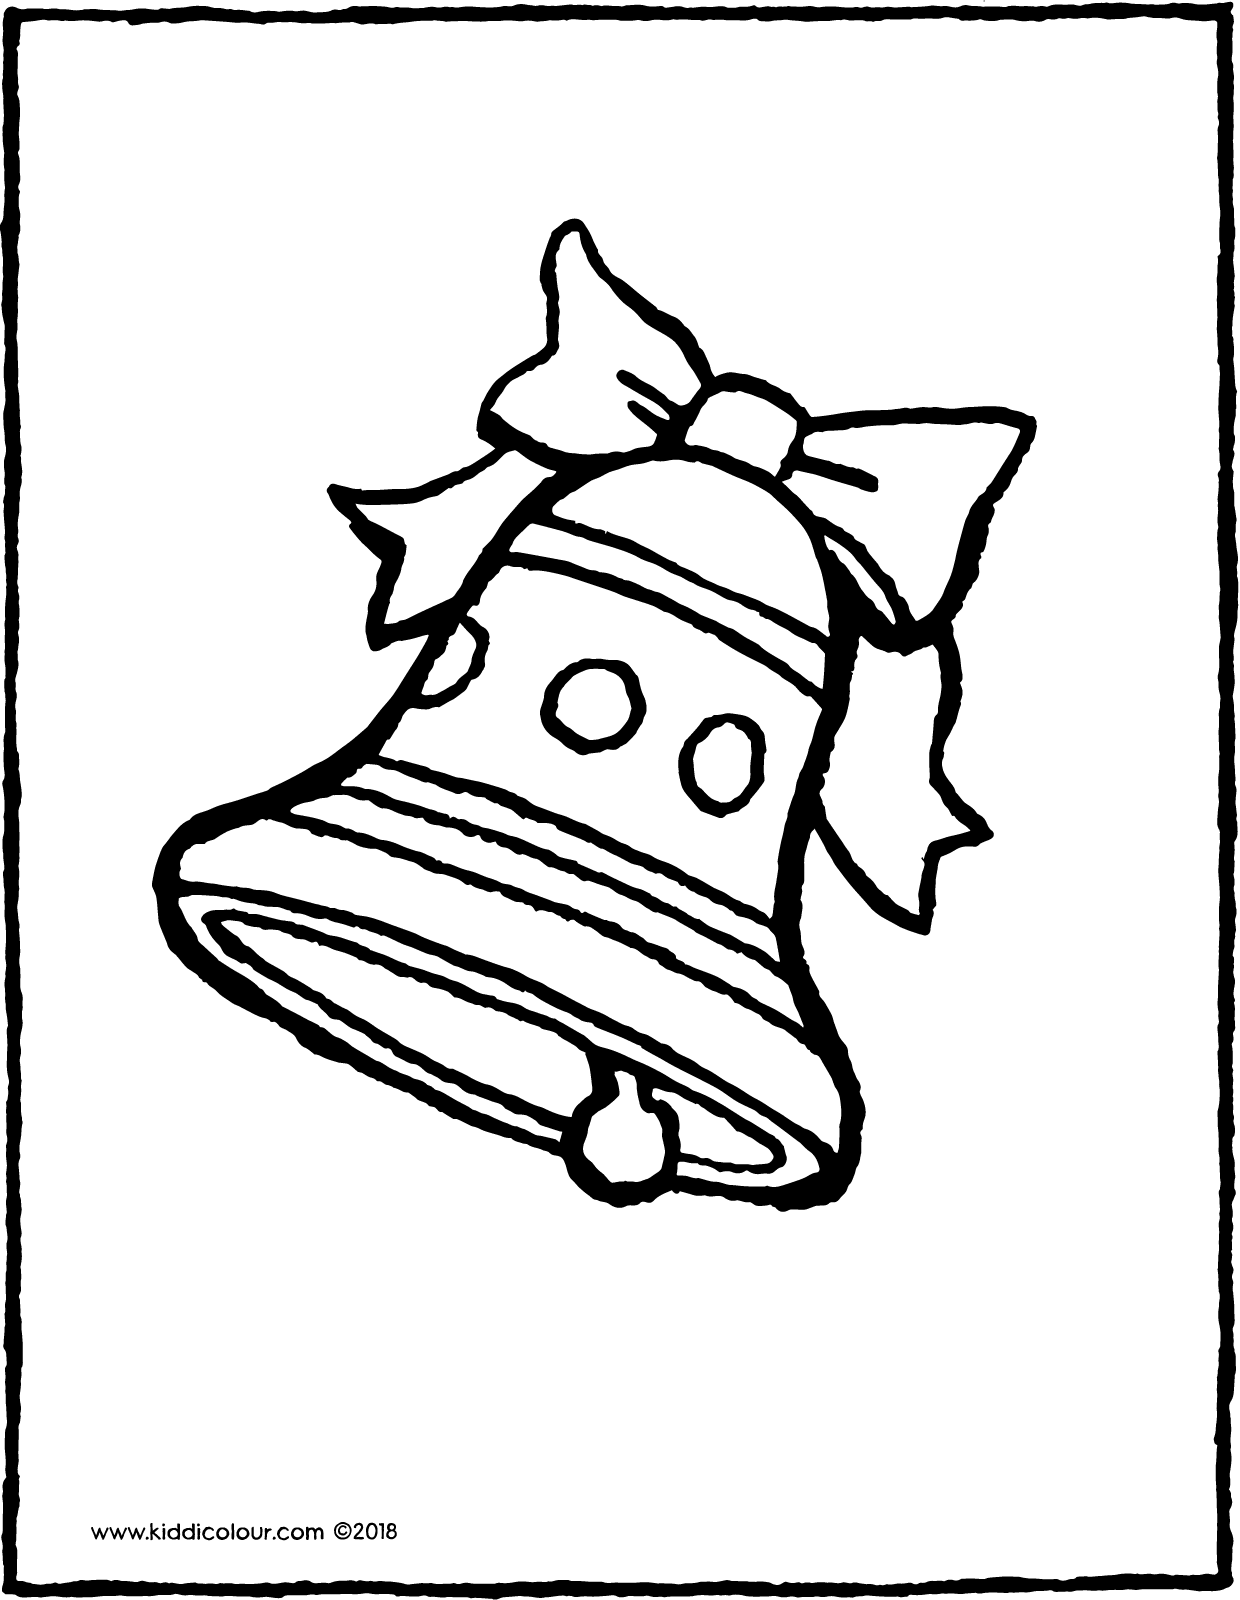 Easter bell colouring page drawing picture 01V